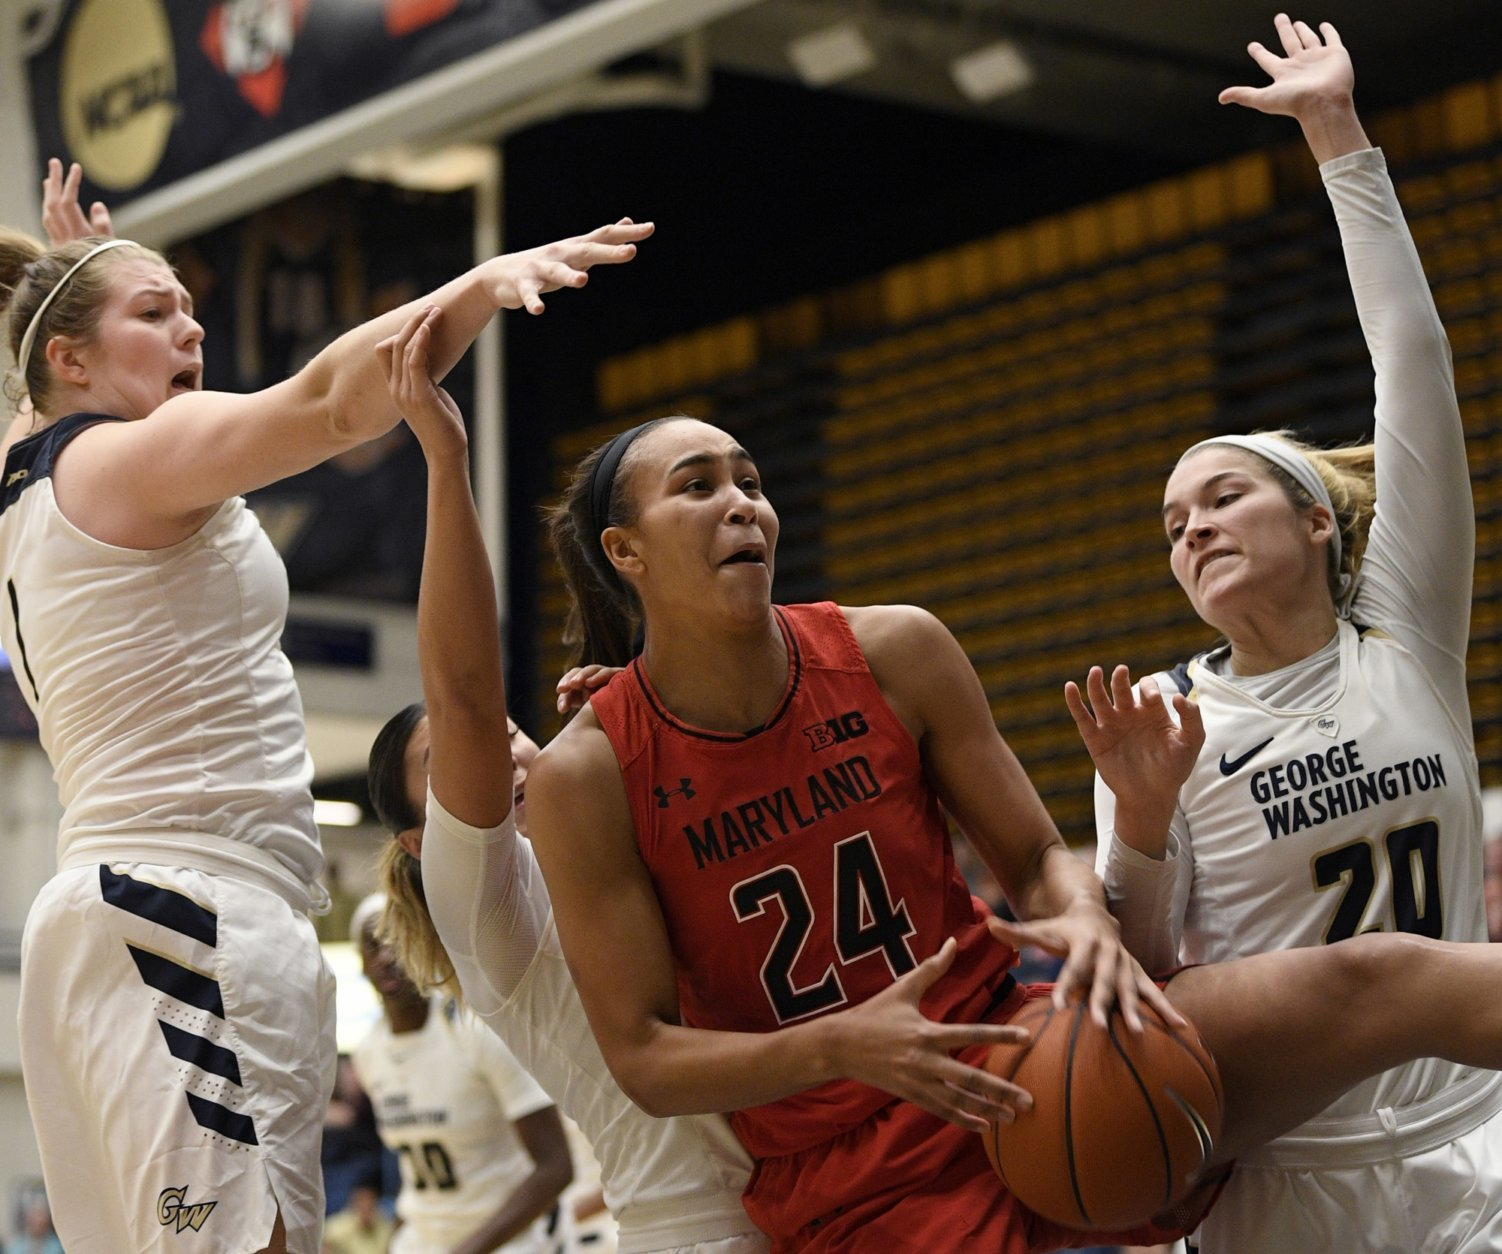 George Washington forward Kelsi Mahoney (1) and forward Sarah Overcash (20) defend against Maryland forward Stephanie Jones (24) during the second half of an NCAA college basketball game, Wednesday, Nov. 14, 2018, in Washington. Maryland won 69-30. (AP Photo/Nick Wass)